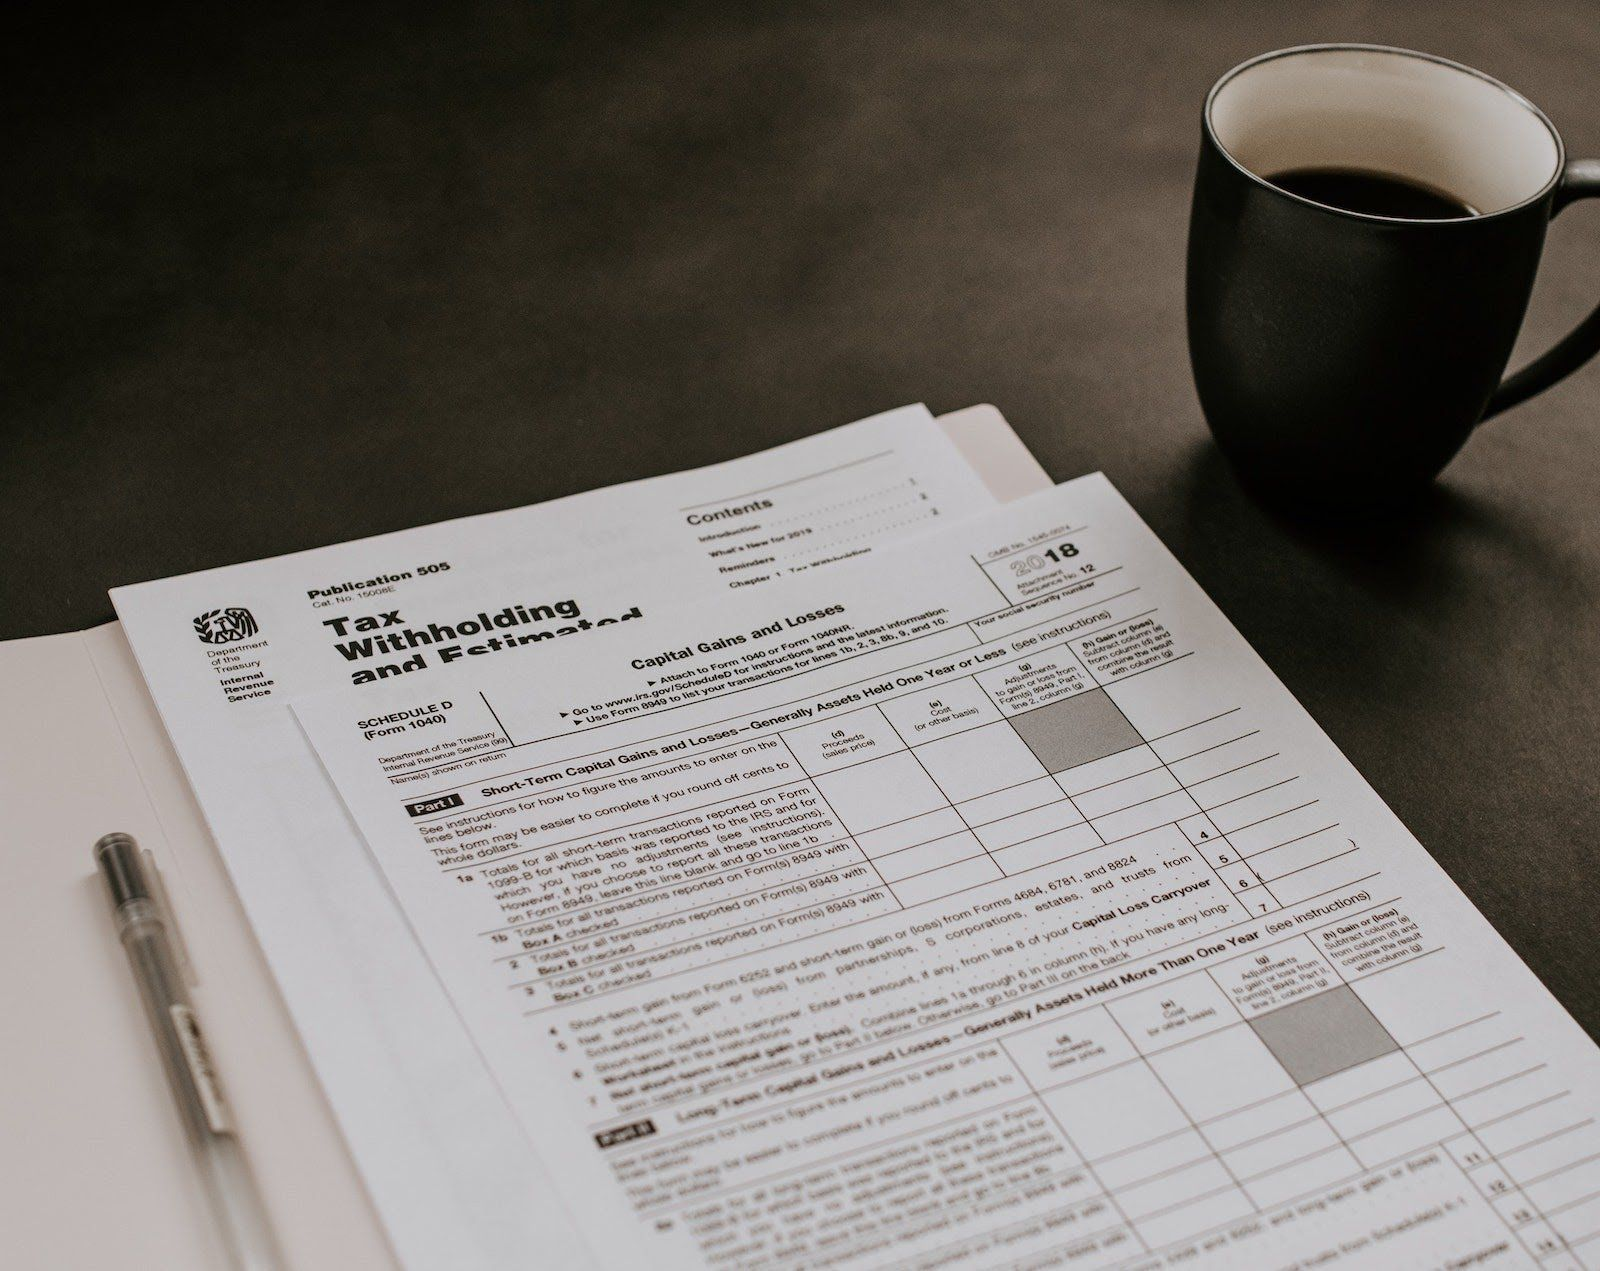 contract vs full time tax papers and coffee